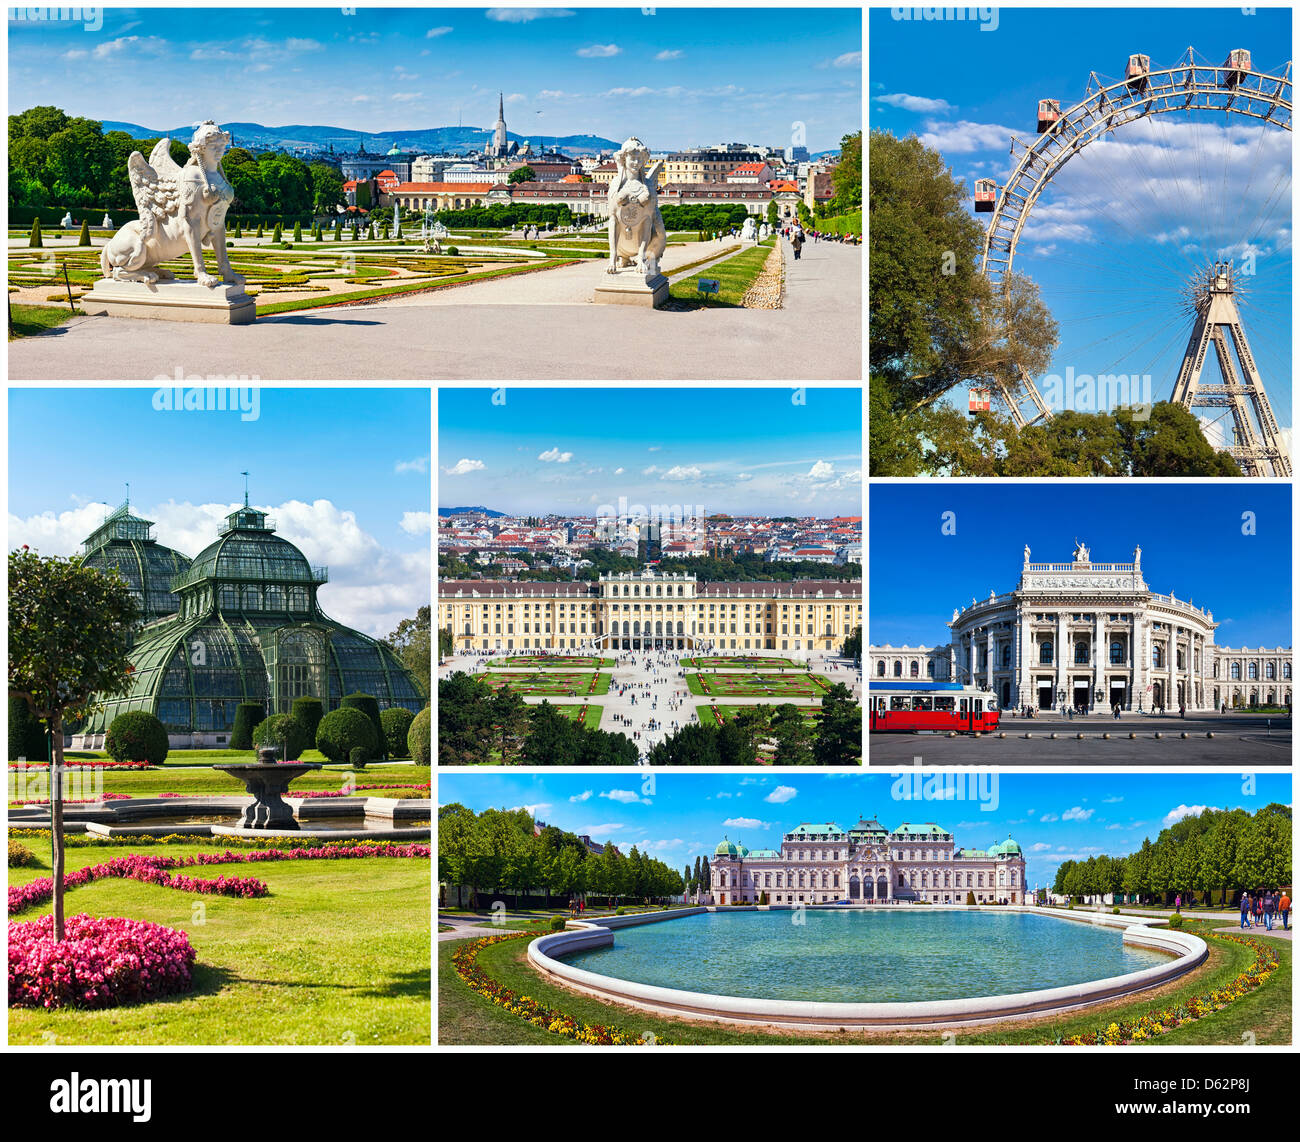 Collage With Famous Places Landmarks And Buildings Of Vienna